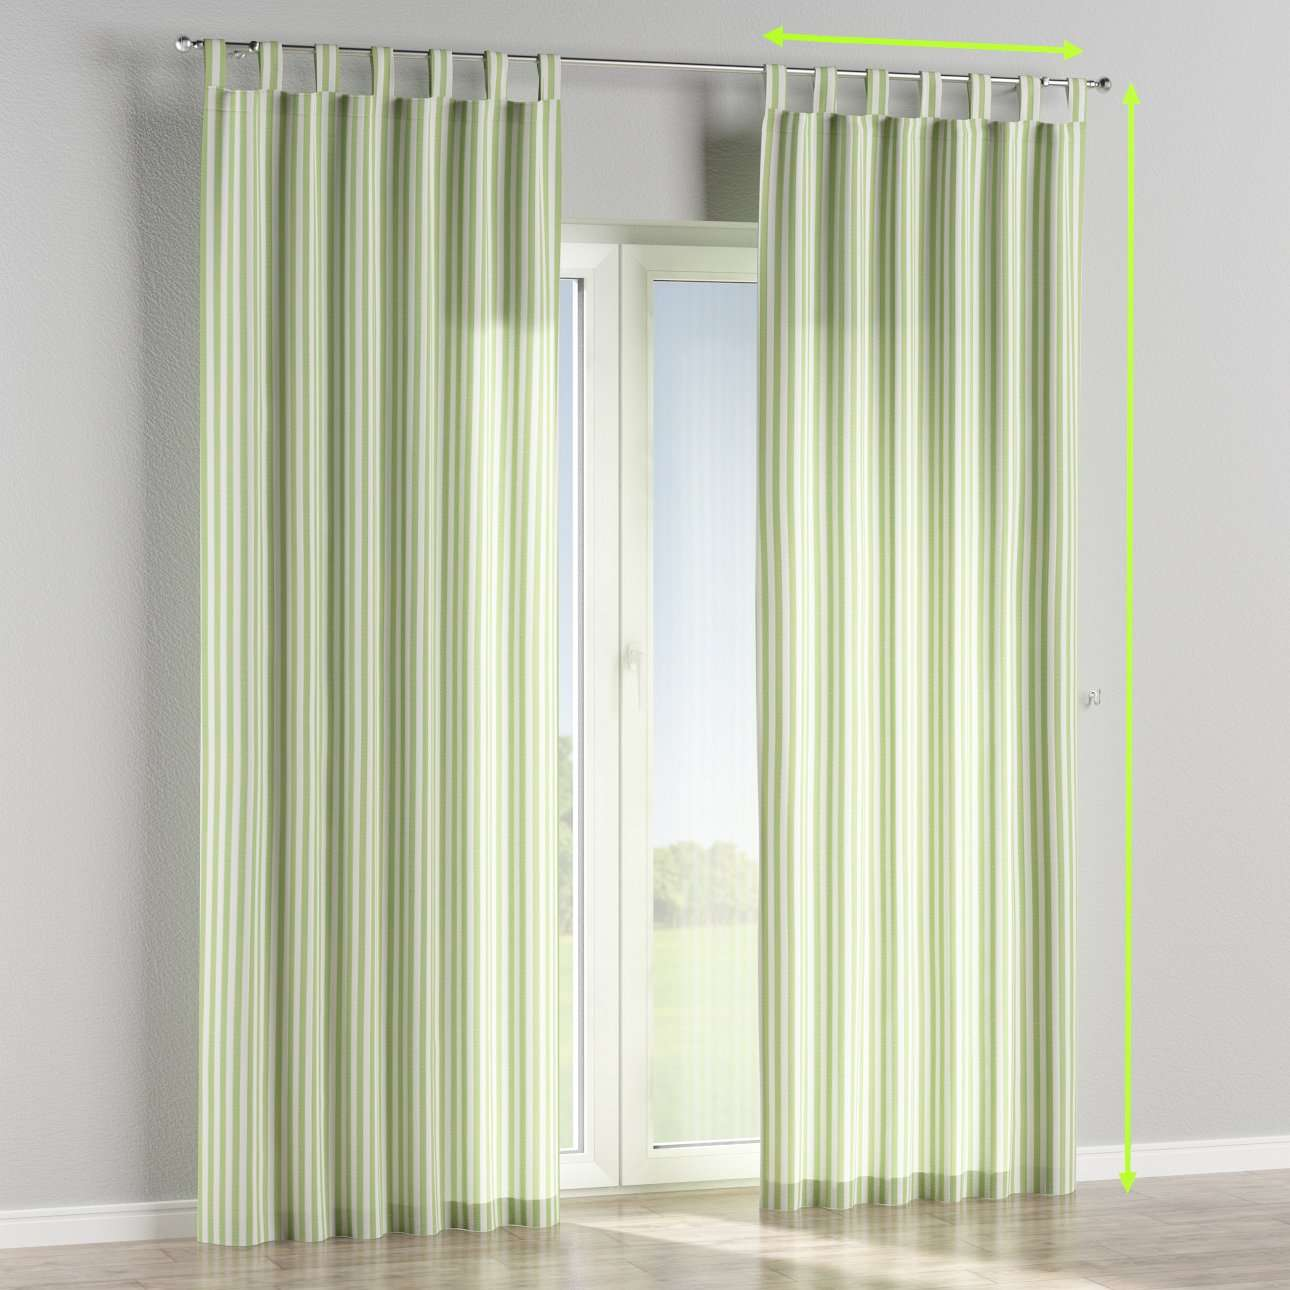 Tab top lined curtains in collection Quadro, fabric: 136-35